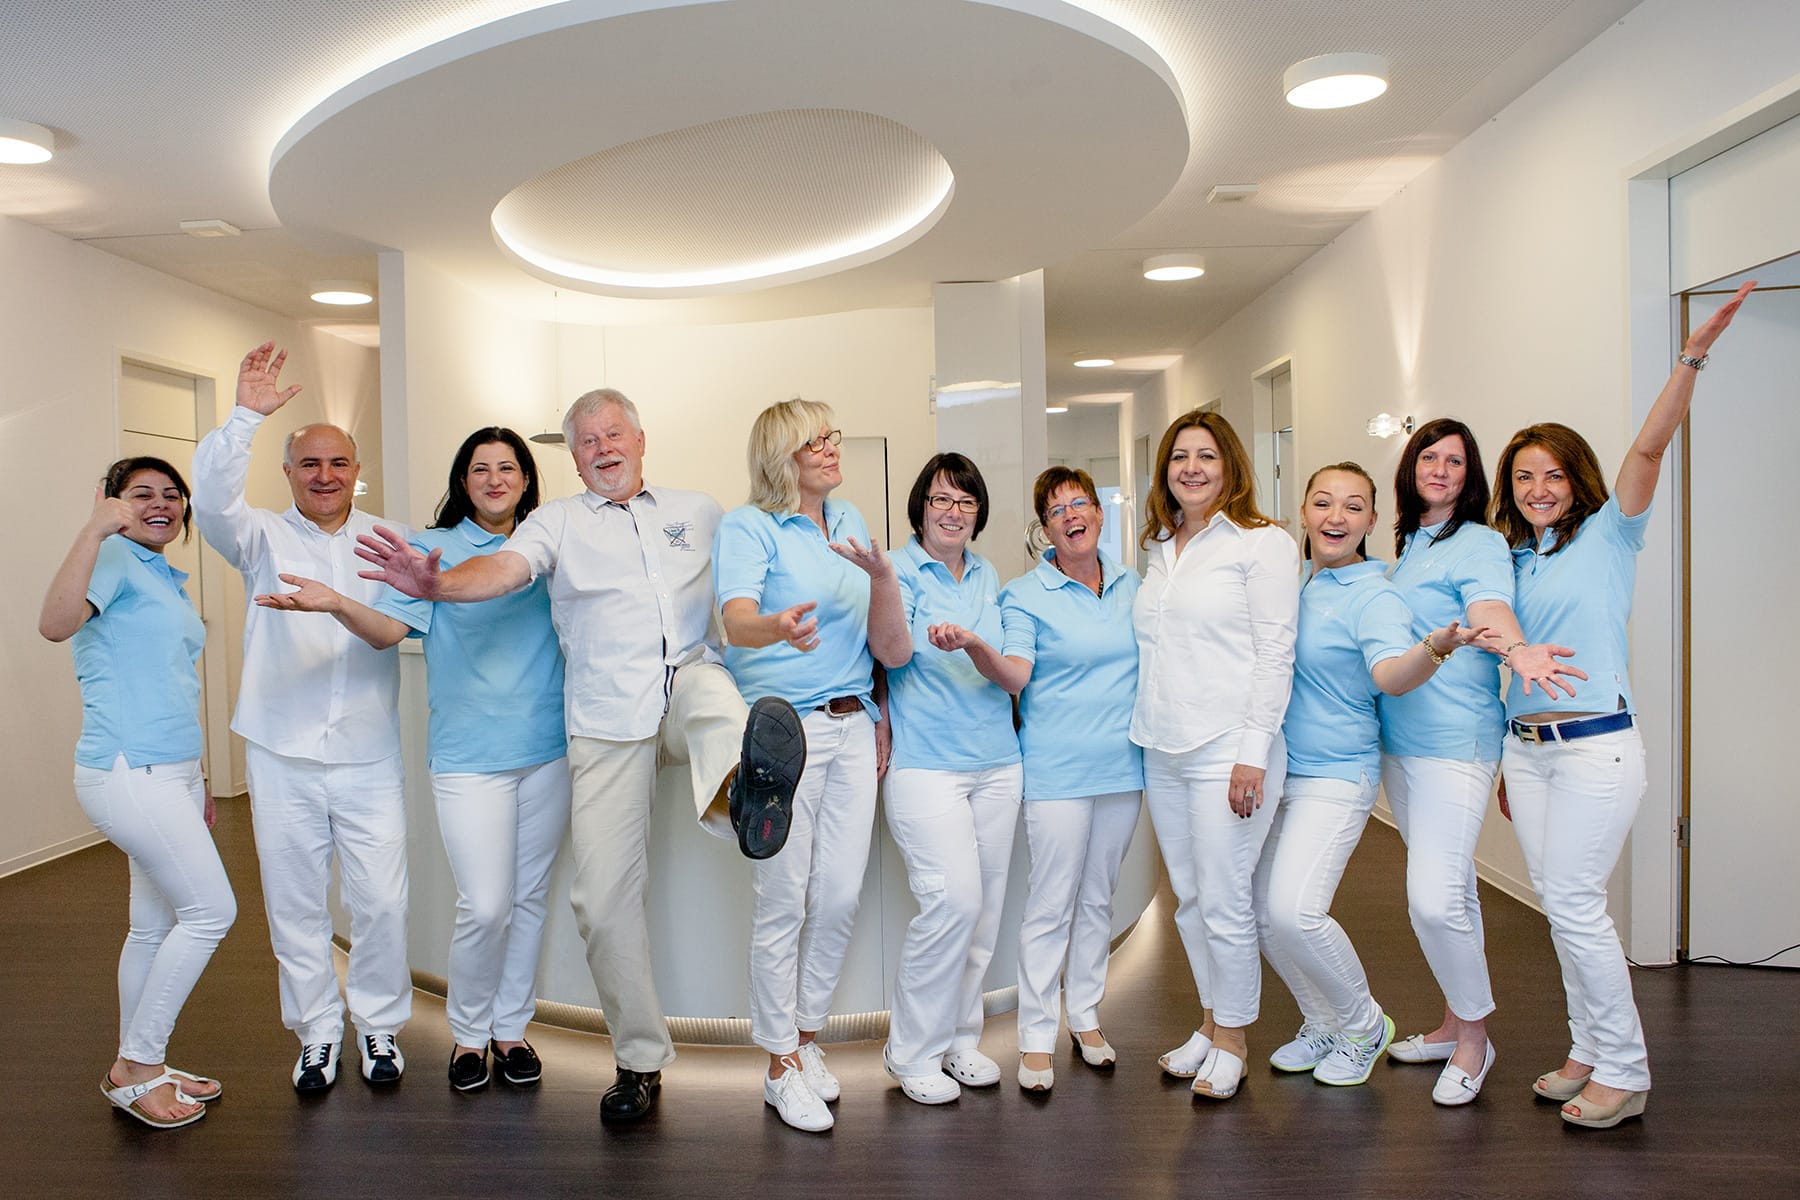 full staff with doctors dentists nurses and dental hygienist